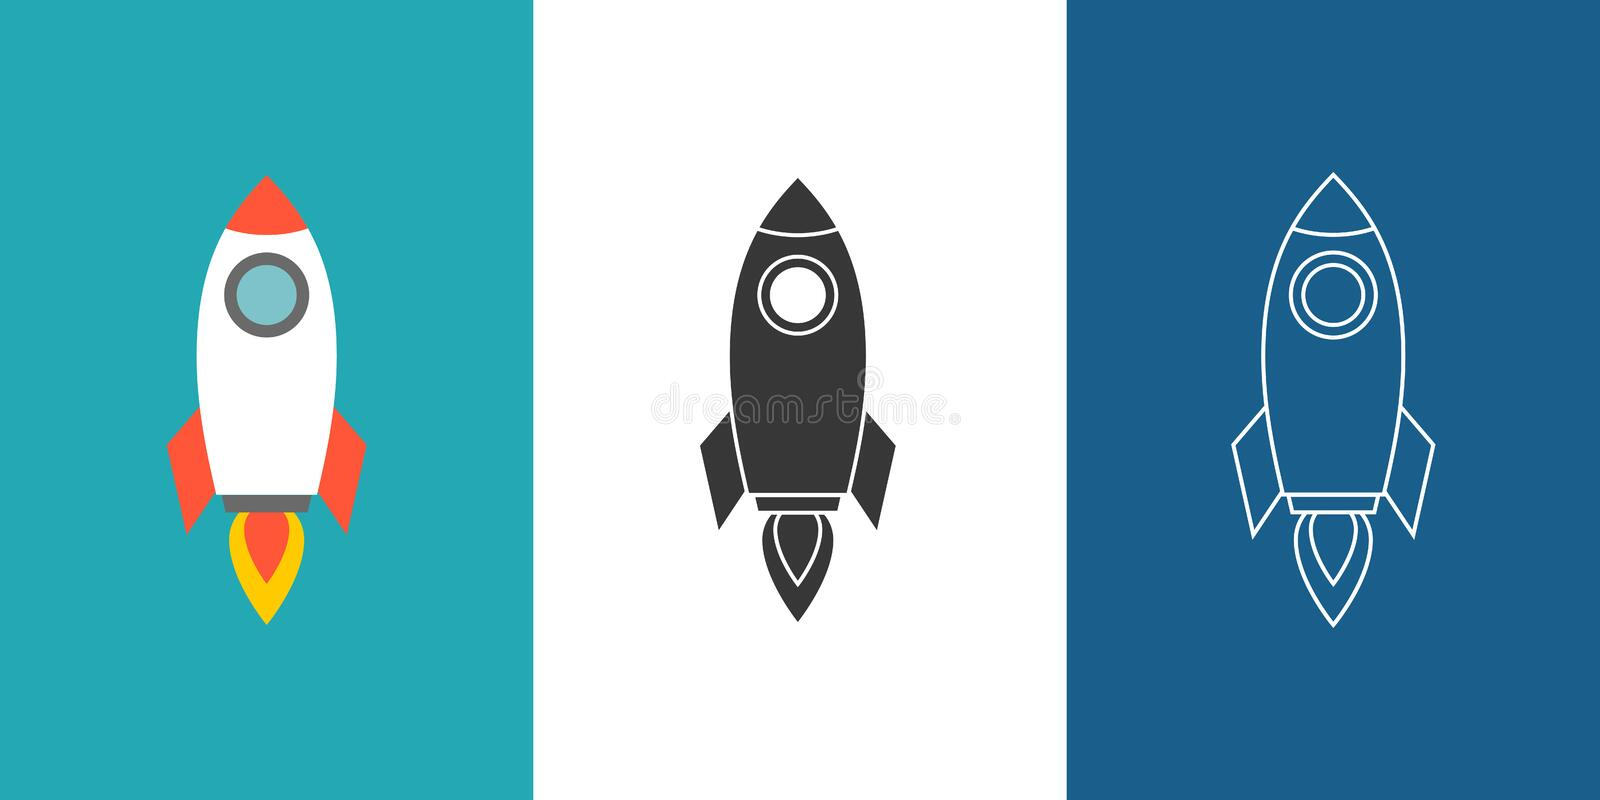 Rocket icon set. Flat design